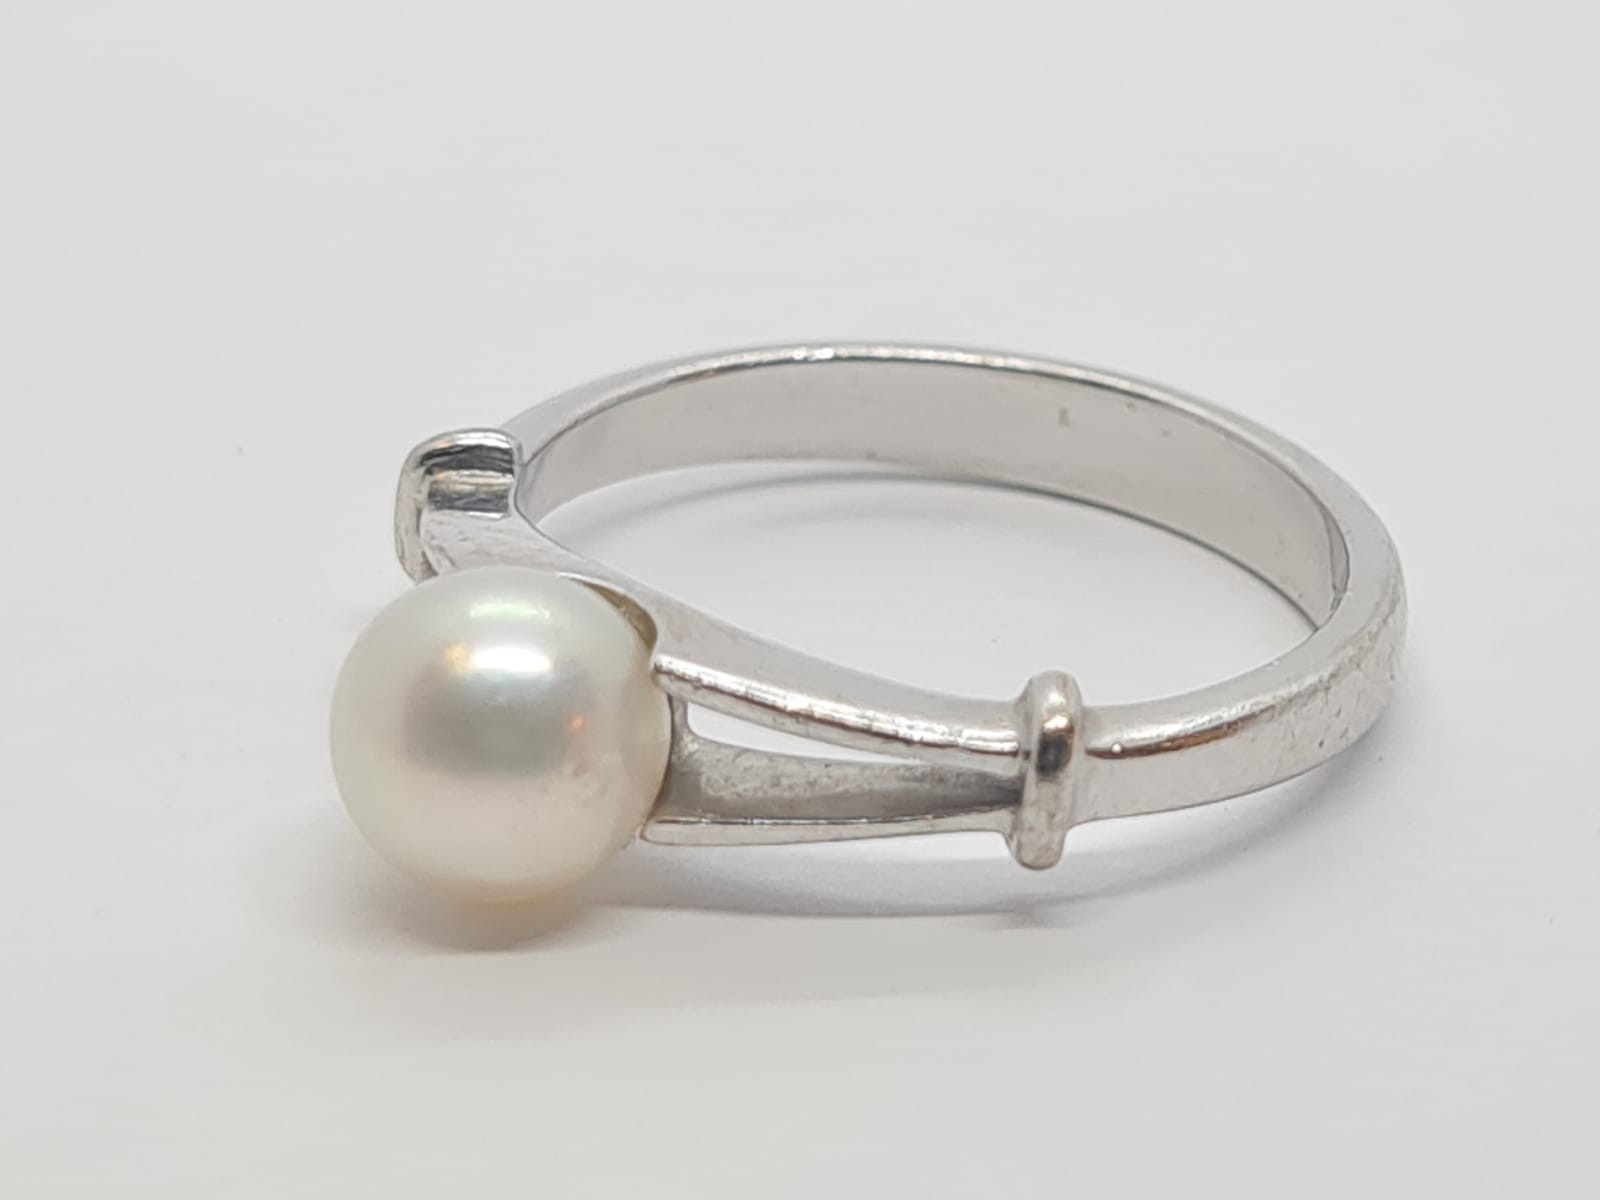 18k white gold PEARL Solitaire RING, weight 3.9G size M - Image 3 of 4